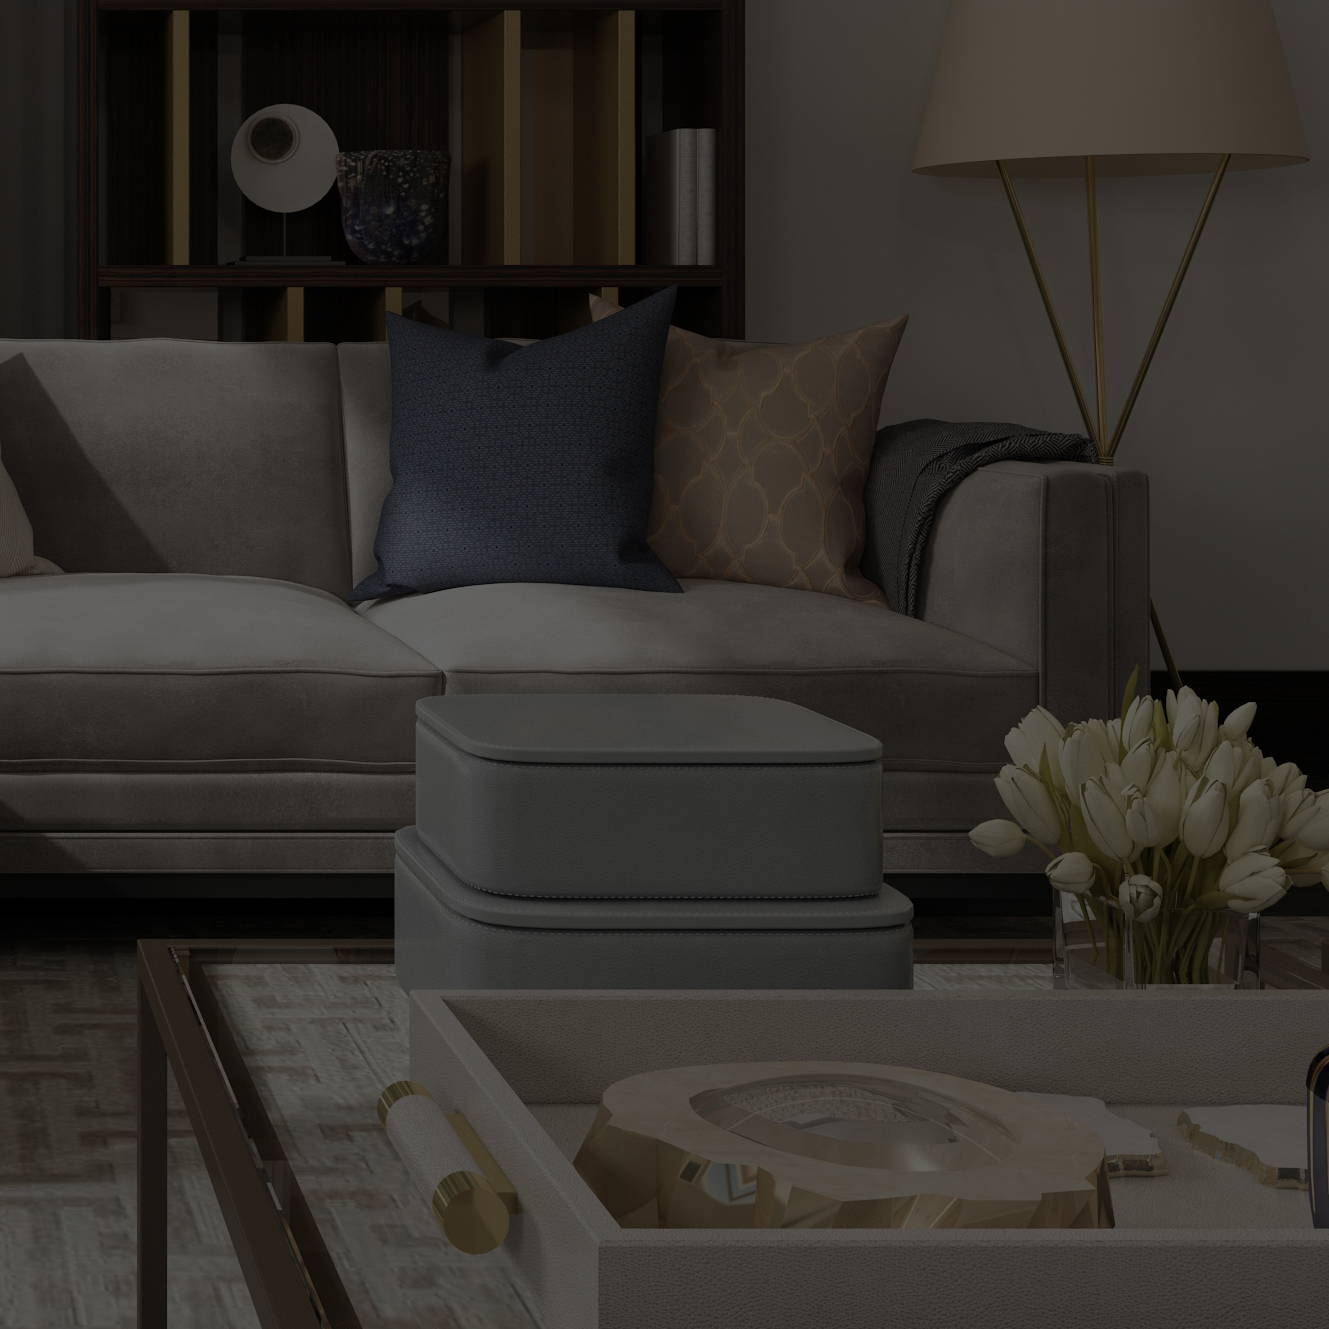 Sofa Packaging Dimensions & Delivery - The Sofa Guide - LuxDeco.com